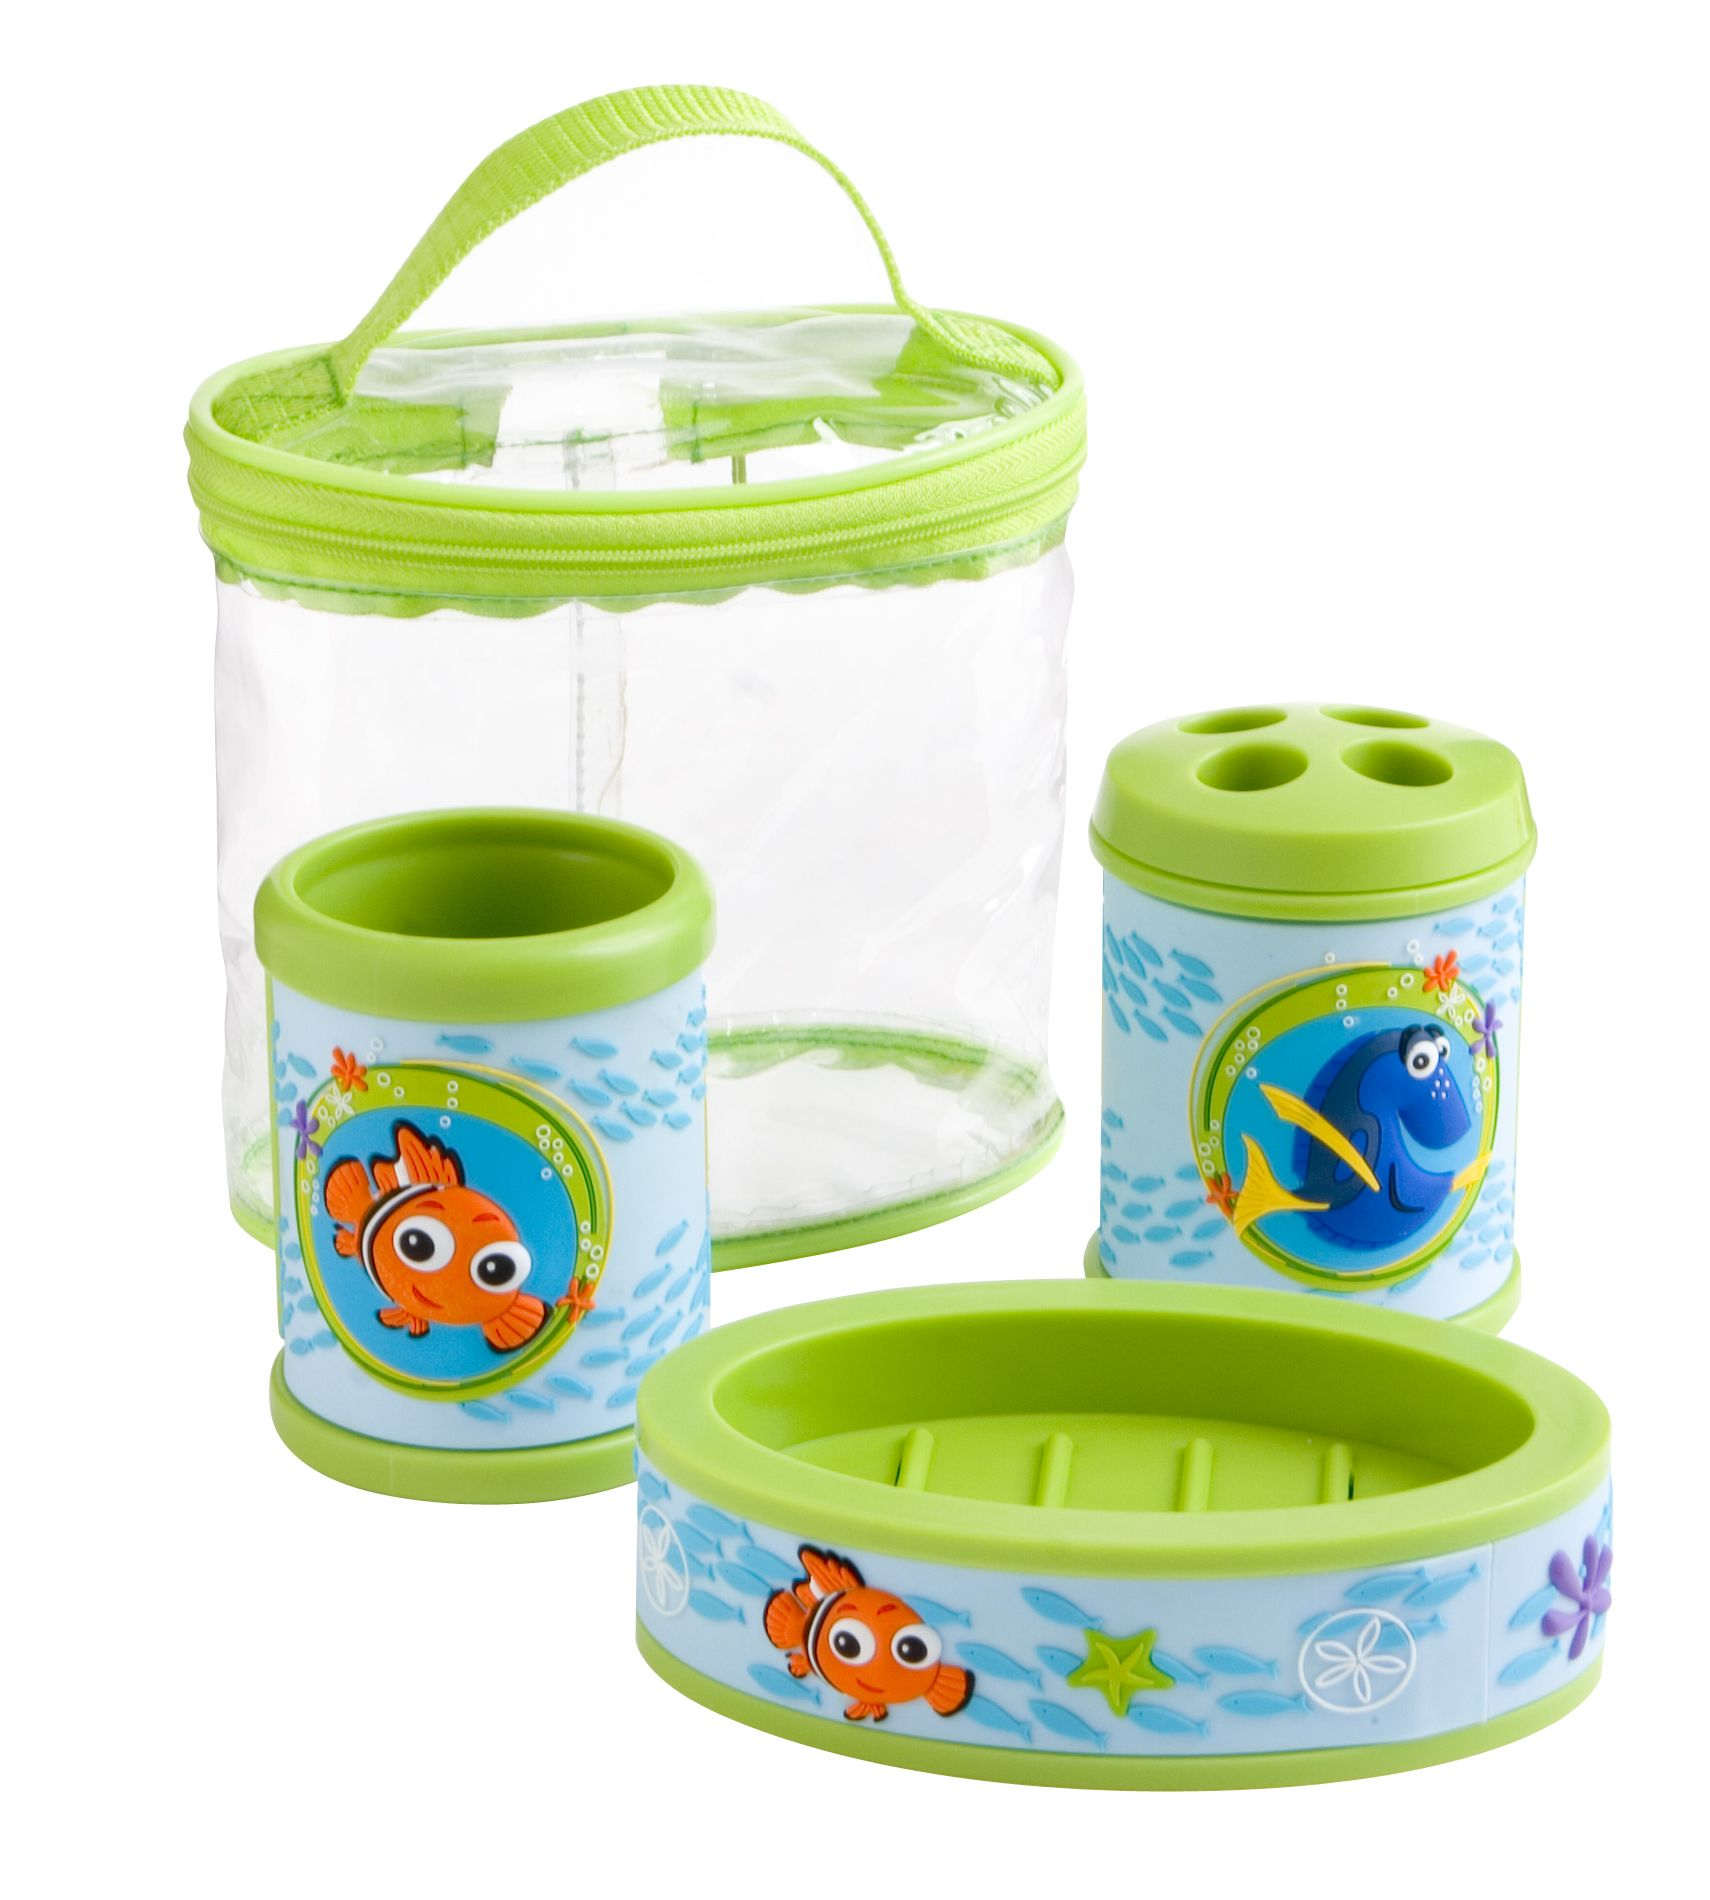 Nemo Bathroom Set Disney Nemo 3pc Bath Set